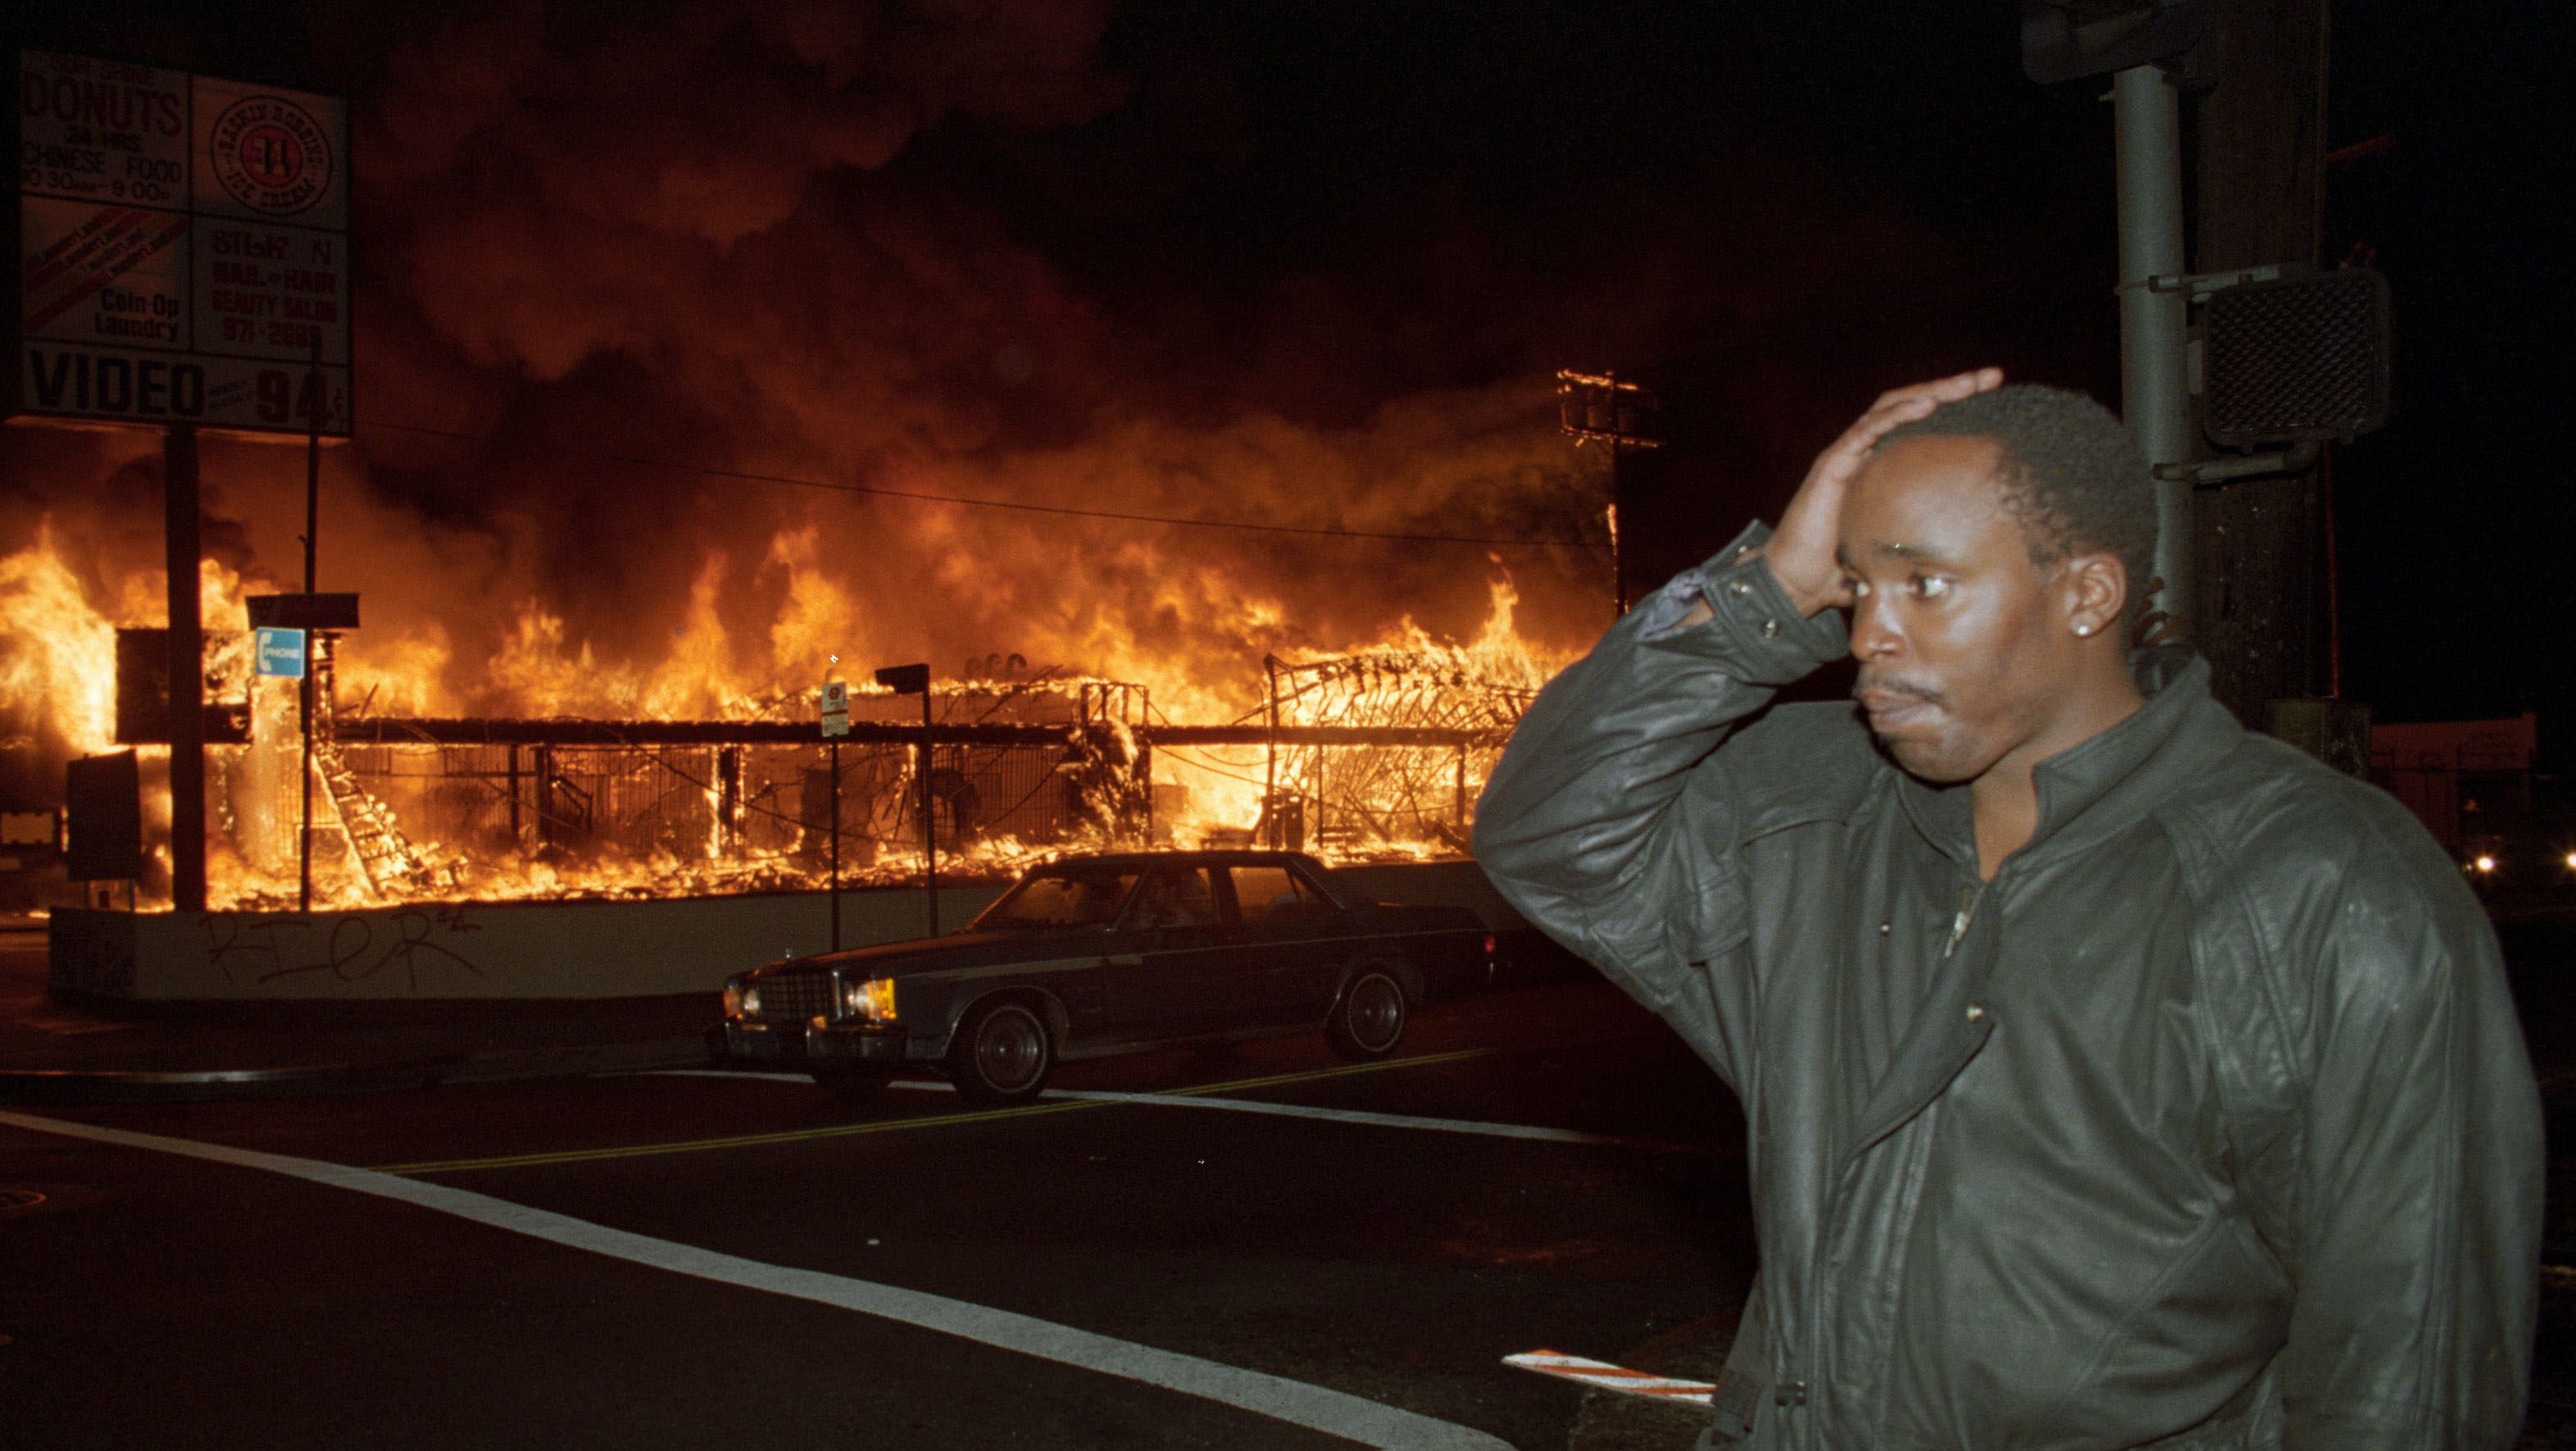 A businessman holds his hand to his head as the store he owns burns down across the street from him during the Los Angeles Riots in the ealy morning hours of April 30, 1992.  Dozens of arson fires were set in south-central Los Angeles after the acquittal of four LAPD officers in the videotaped beating of motorist Rodney King.   REUTERS/Lee Celano  (UNITED STATES - Tags: CIVIL UNREST CRIME LAW) - RTR30E2P